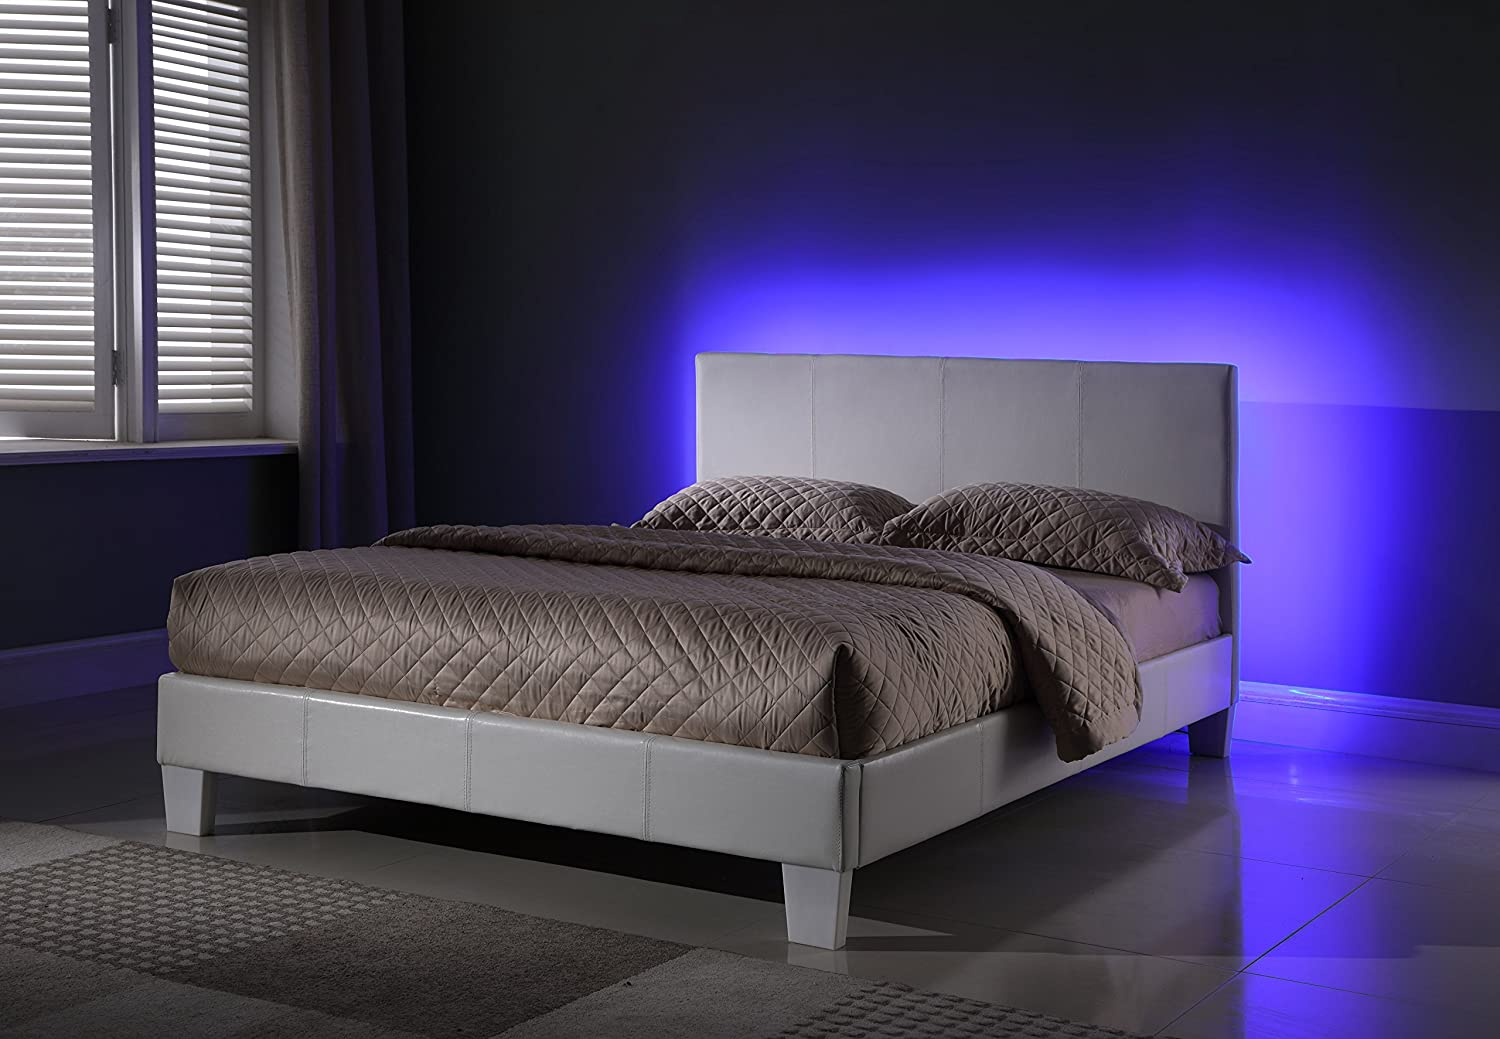 MALKO 8079-Q, Queen White Faux Leather Platform Bed with Built in LED Lights